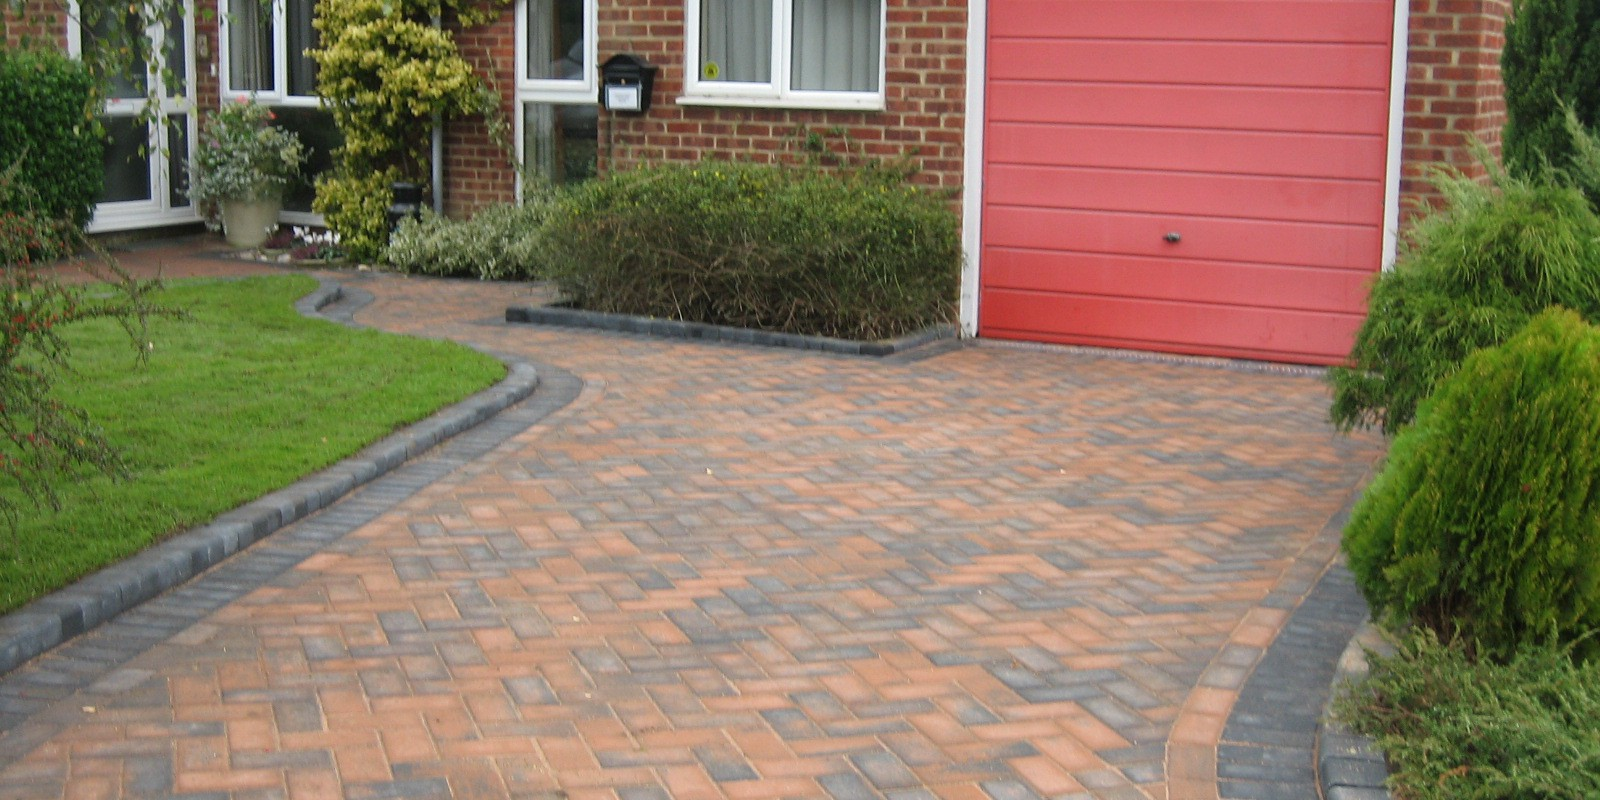 Abbey Paving Block Paving Driveway Completed 1